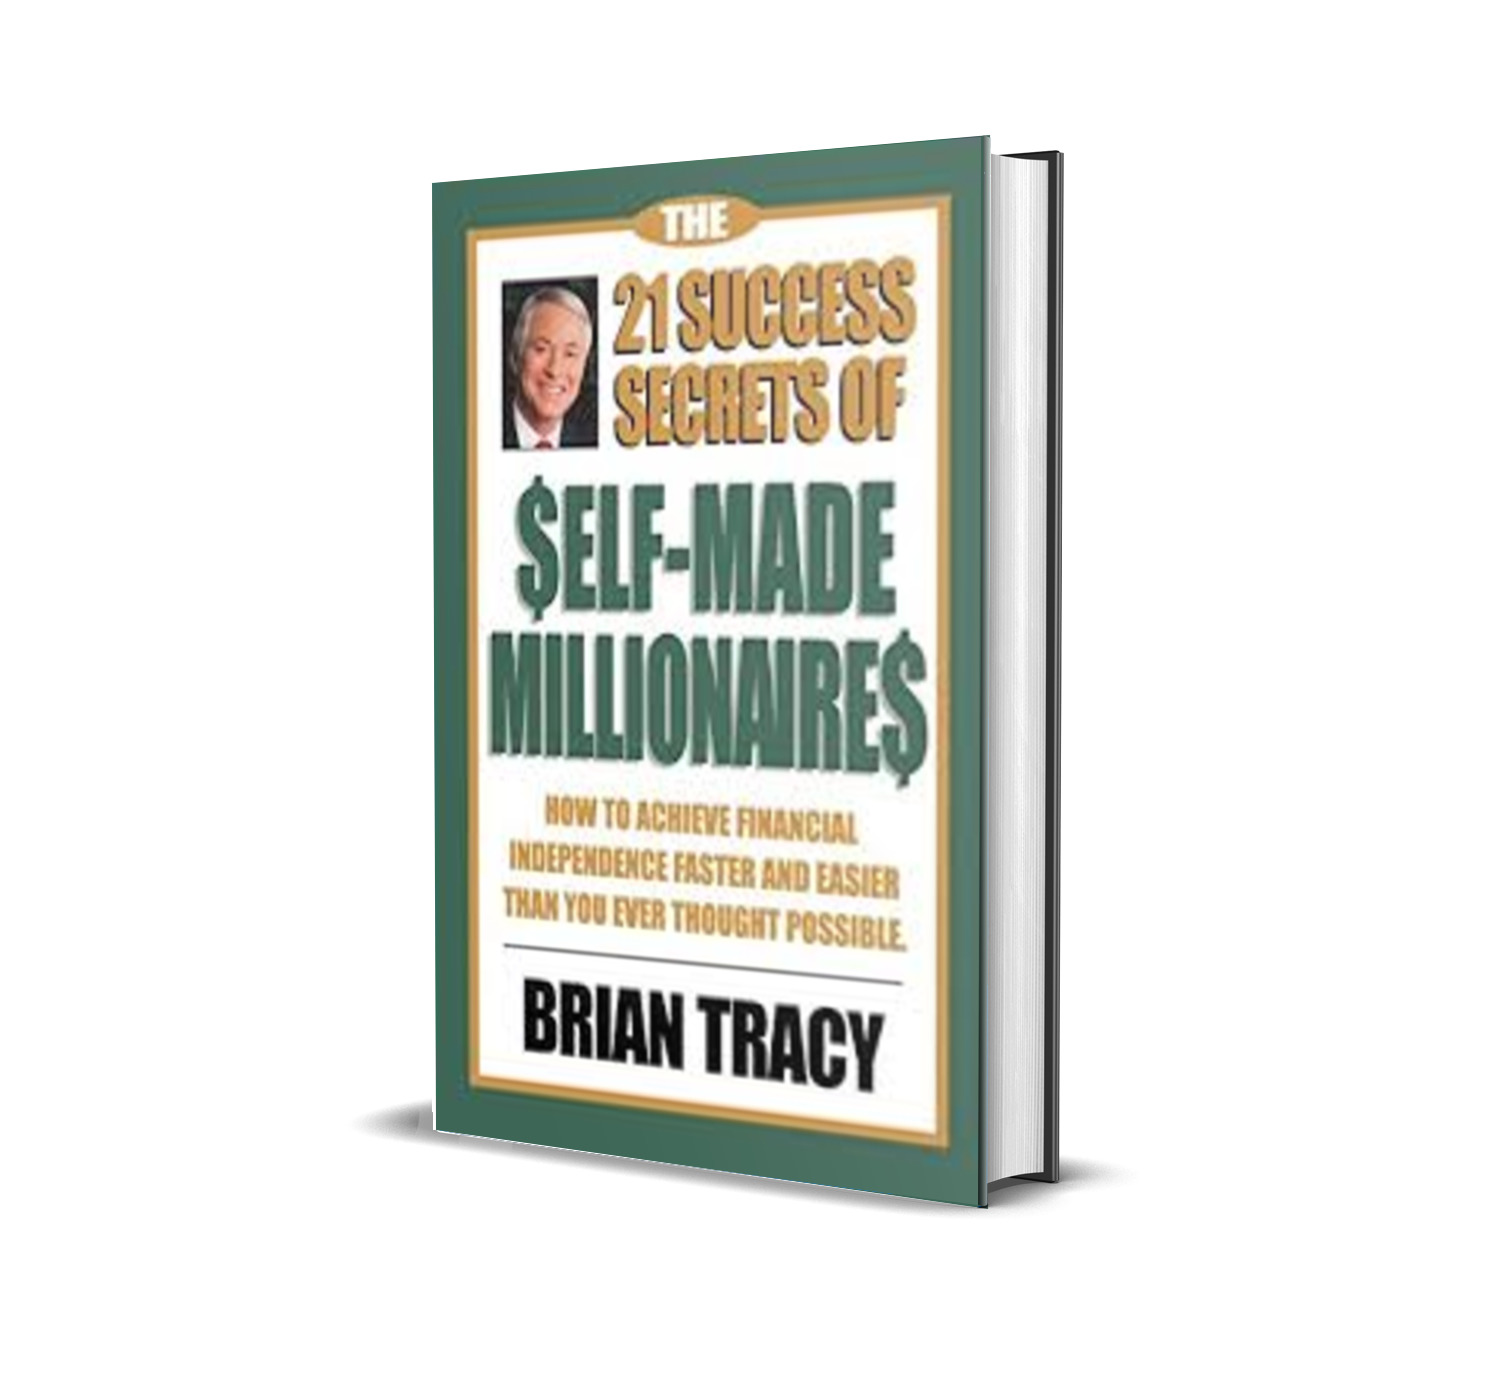 THE 21 SUCCESS SECRETS OF SELF- MADE MILLIONAIRES - Brian Tracy